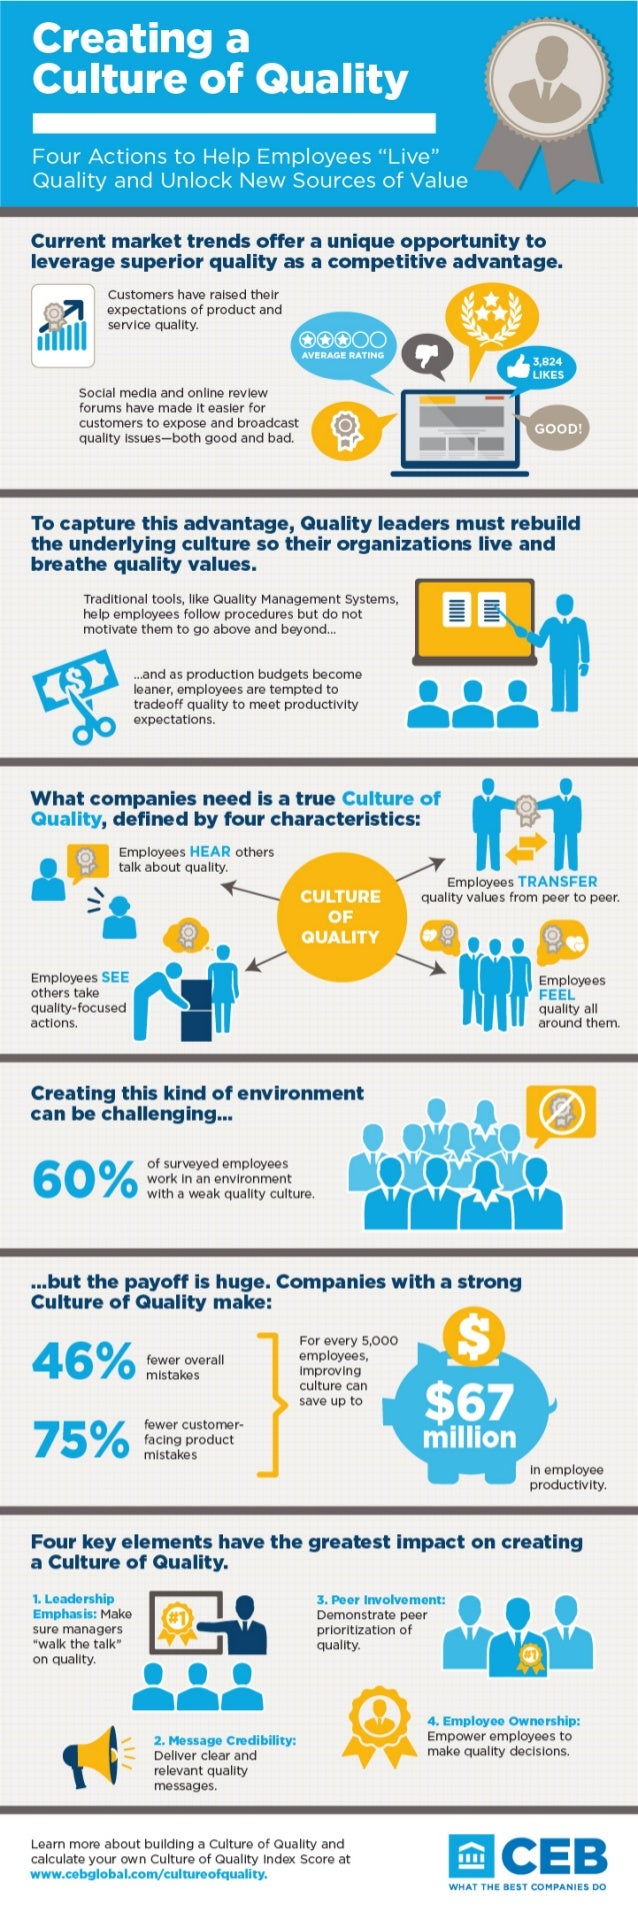 CEB Culture of Quallity Infographic